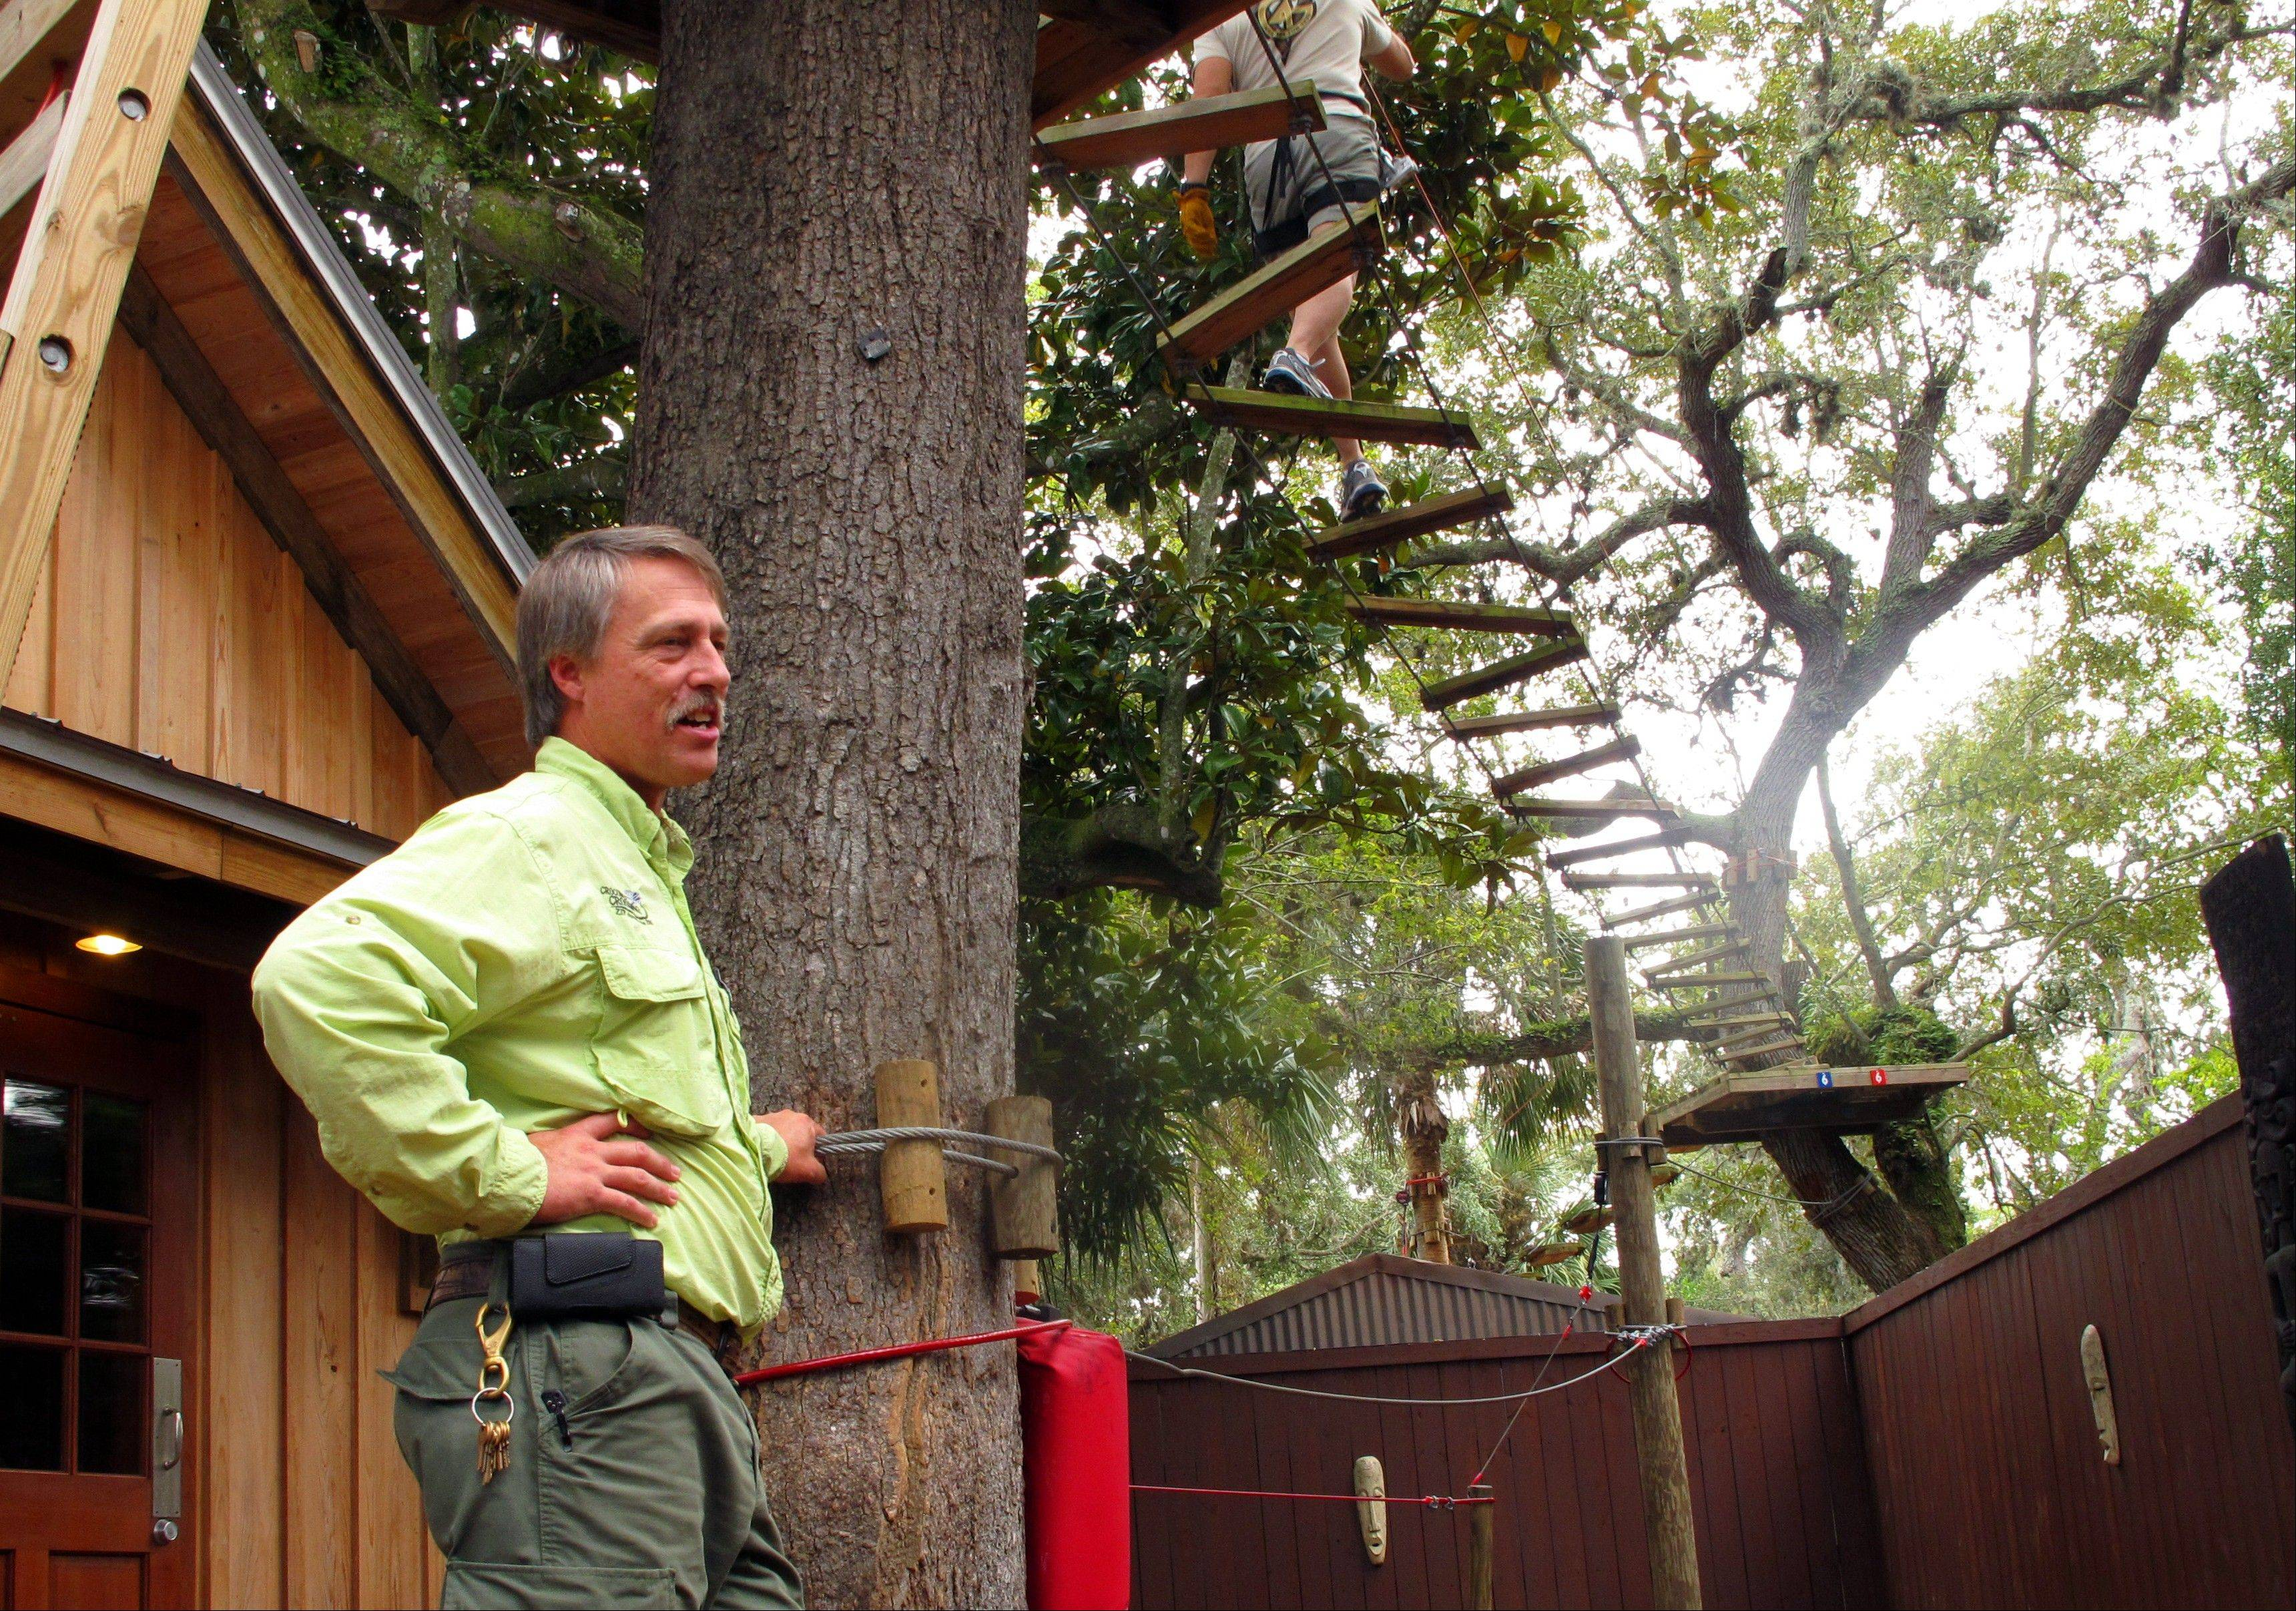 Manager Scott Brown stands at the first of 49 stations on the obstacle course at the St. Augustine Alligator Farm in St. Augustine, Fla.